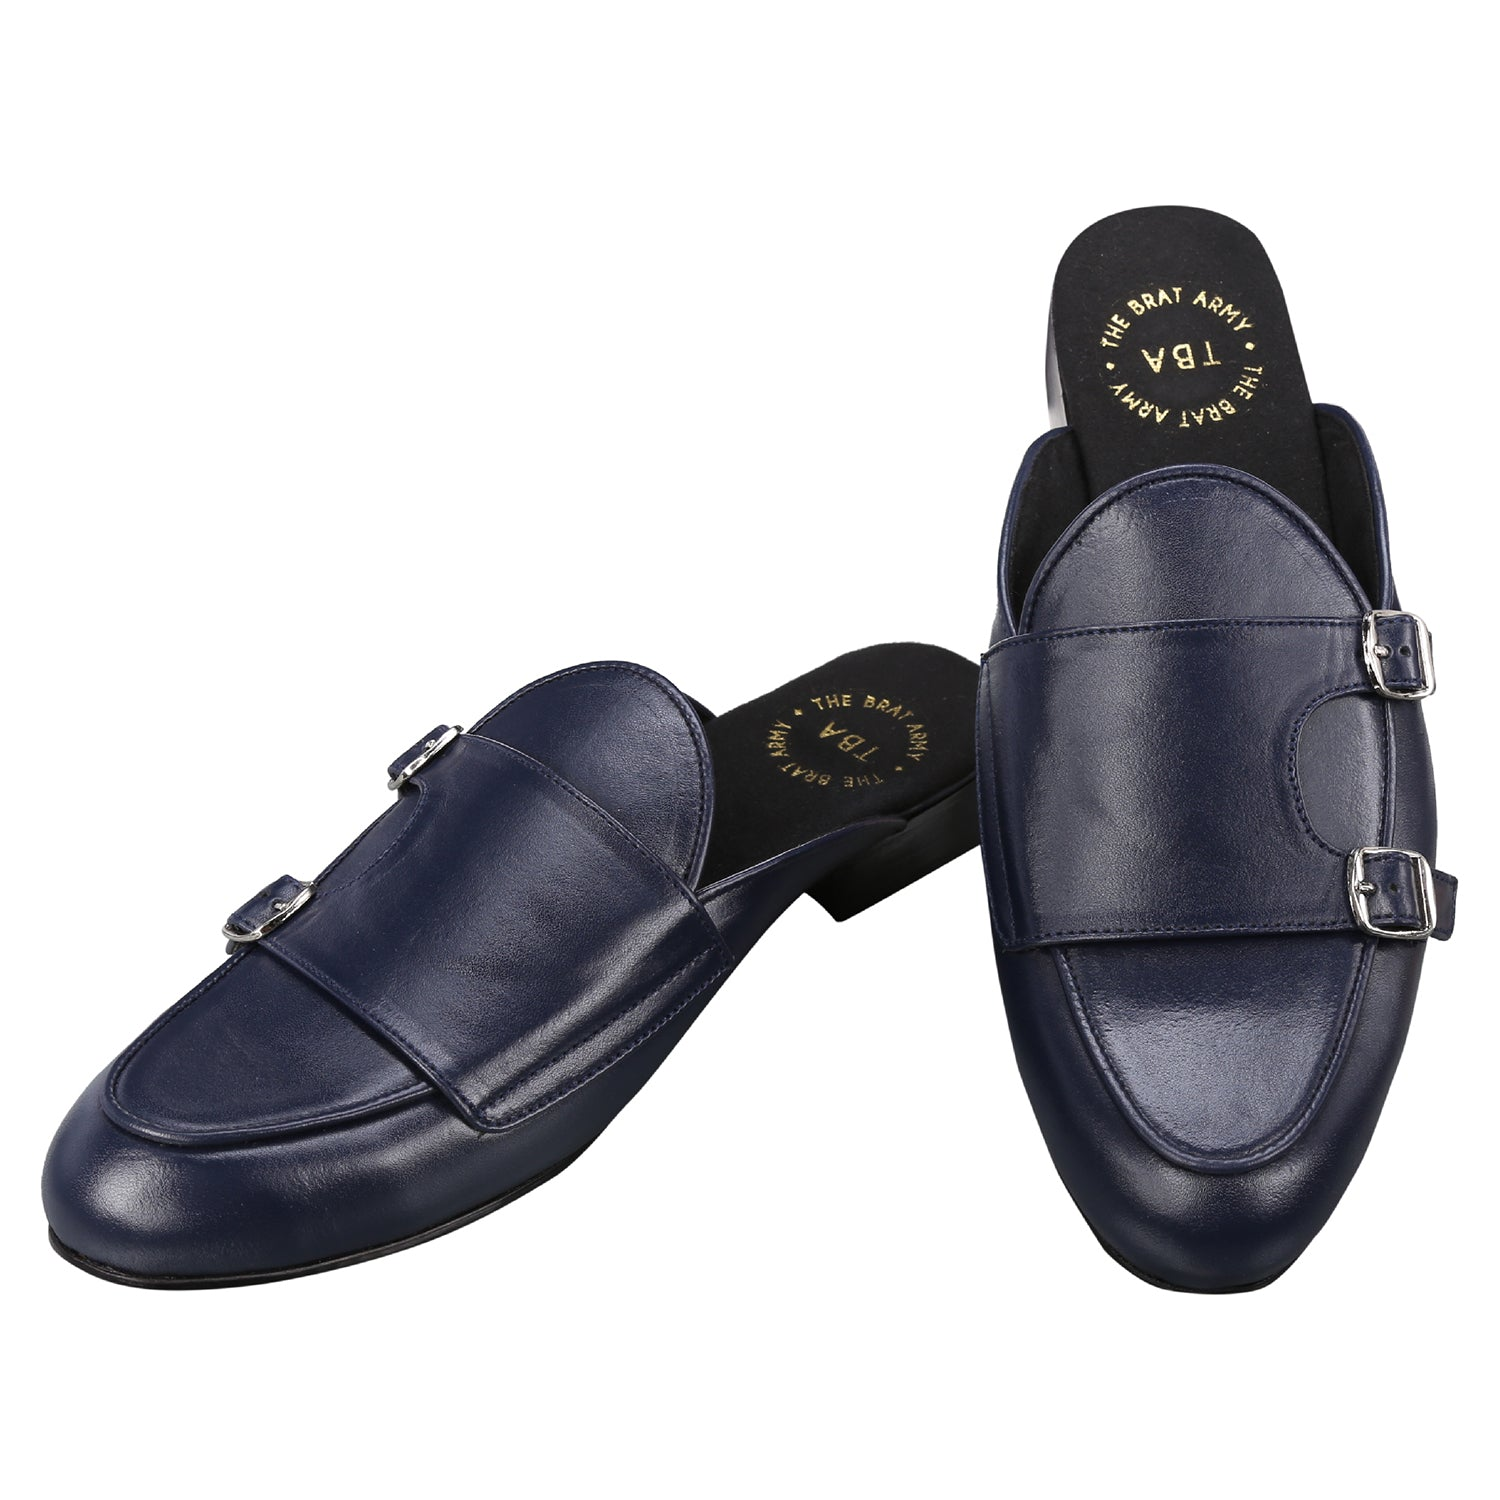 ALSACE DOUBLE MONK BLUE MULES